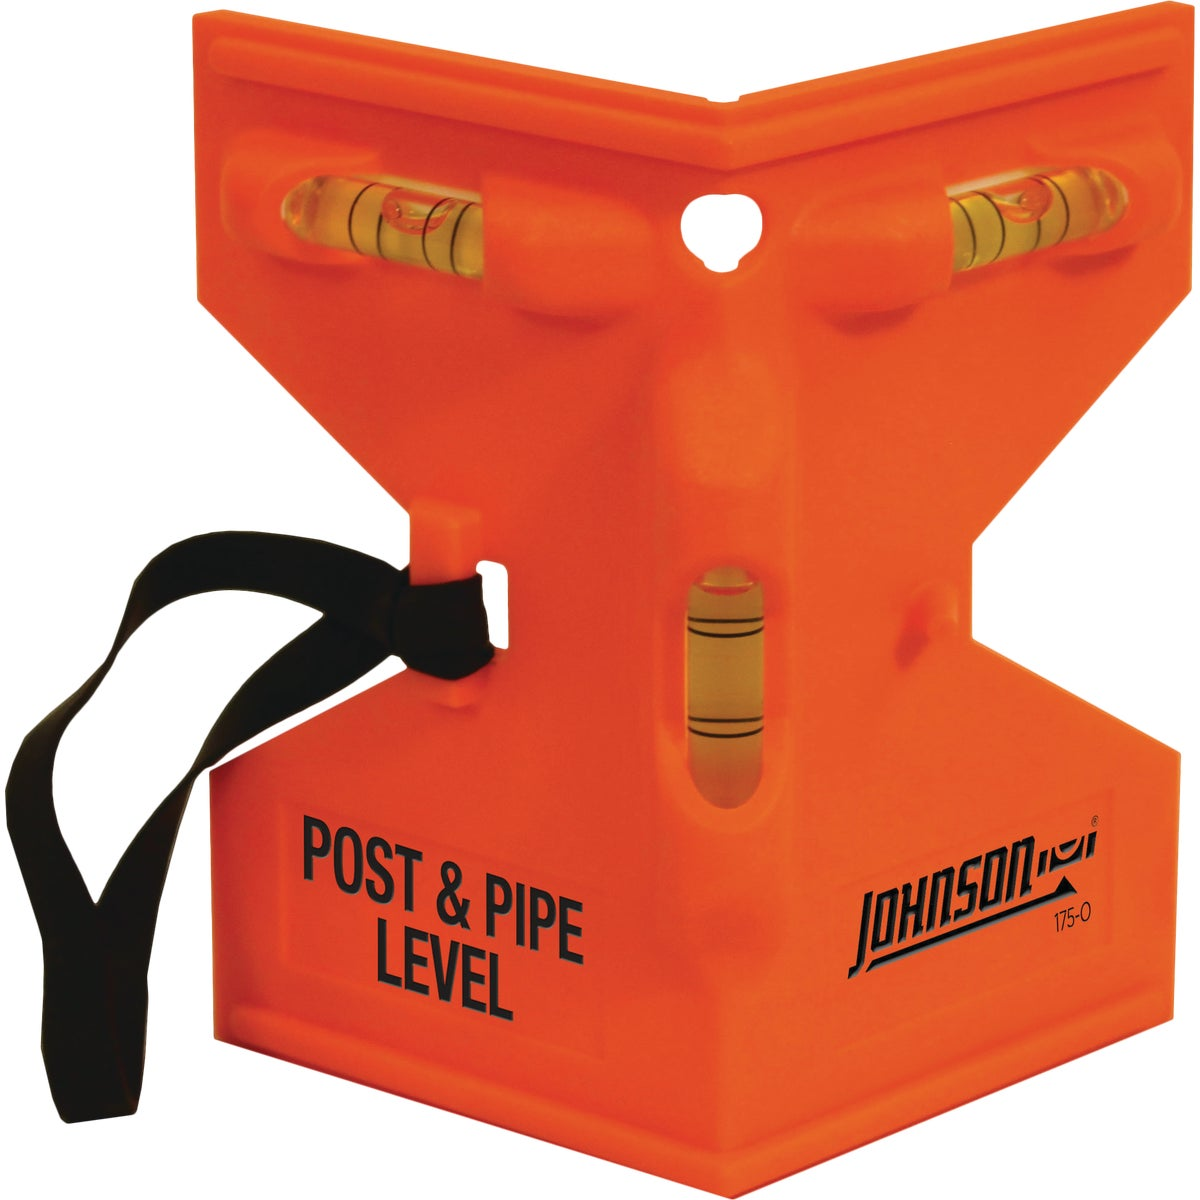 ORANGE POST LEVEL